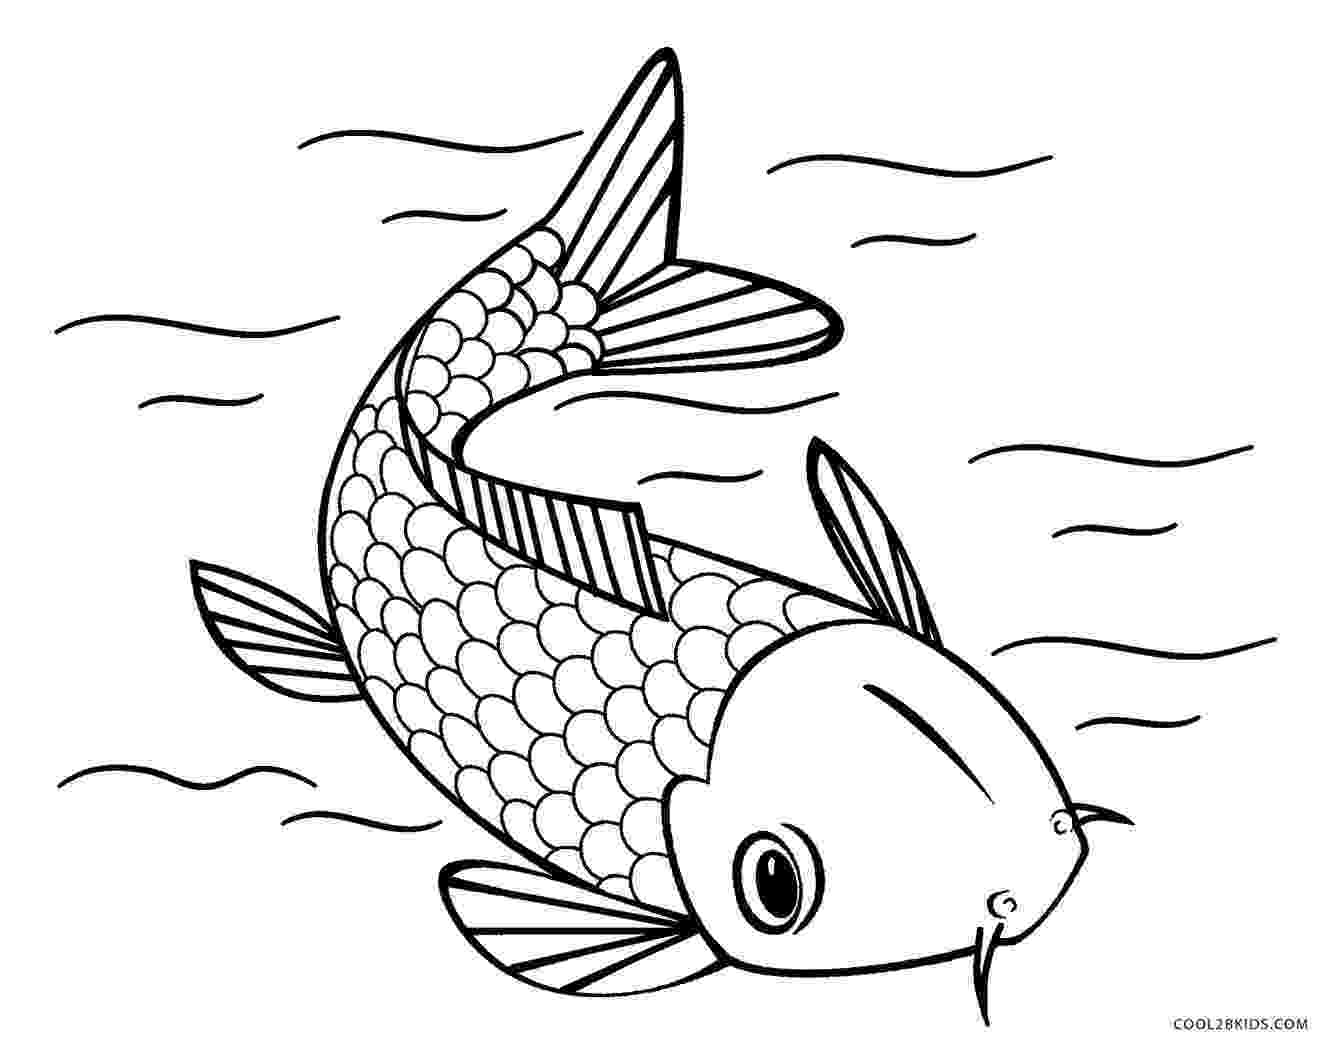 fish picture to color free printable fish coloring pages for kids cool2bkids to color picture fish